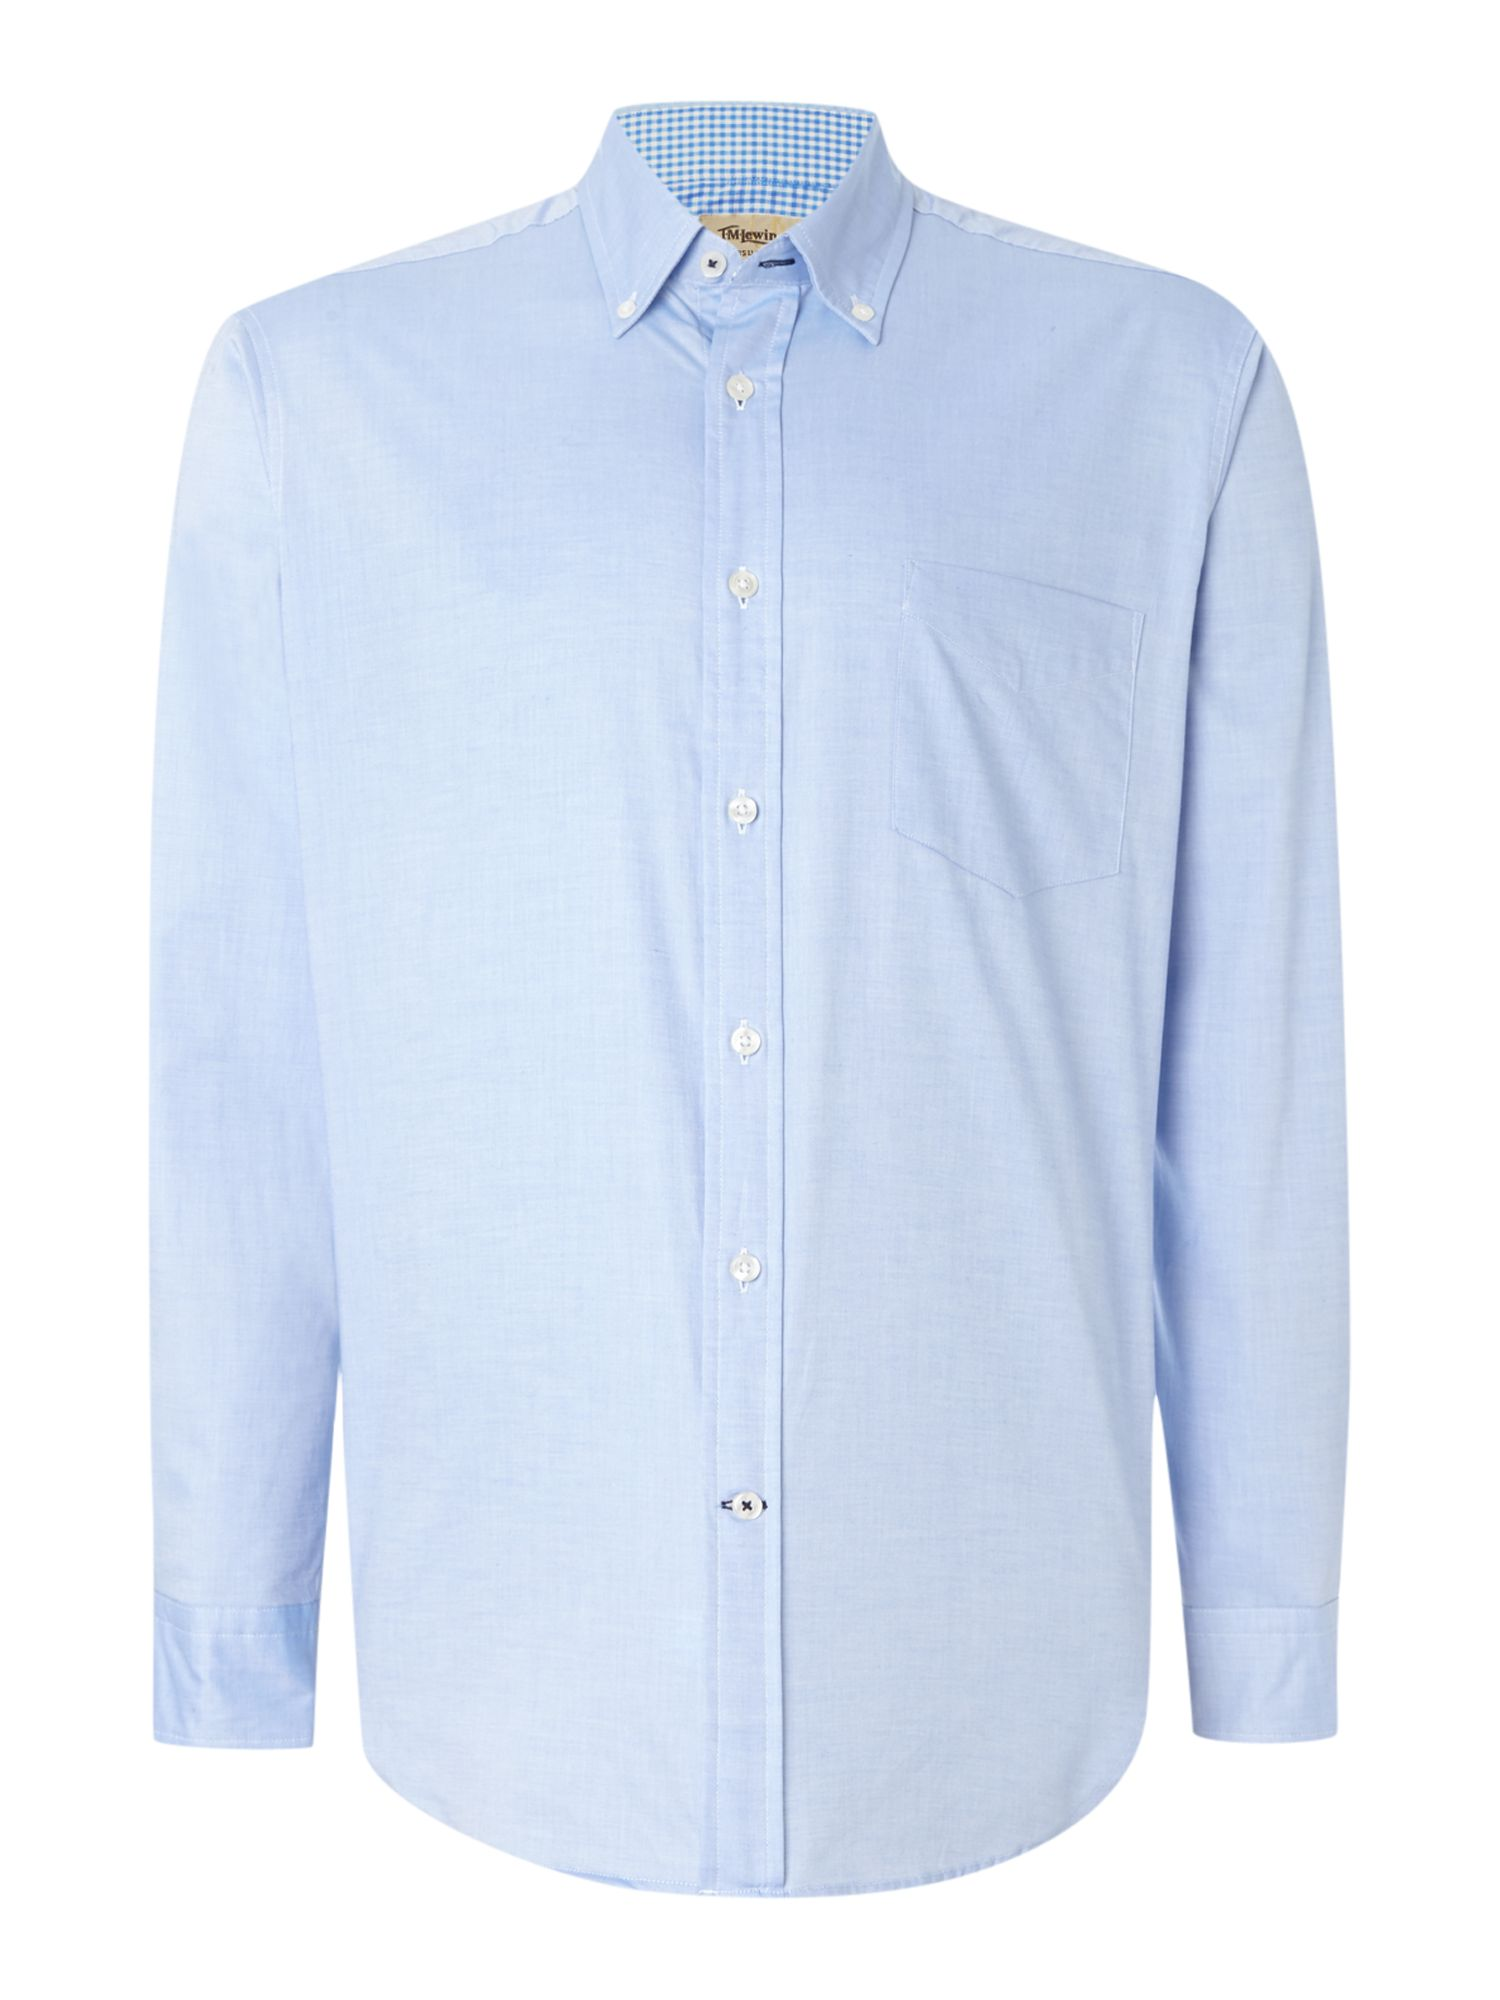 TM Lewin Men's TM Lewin Oxford Relaxed Fit Casual Shirt, Light Blue